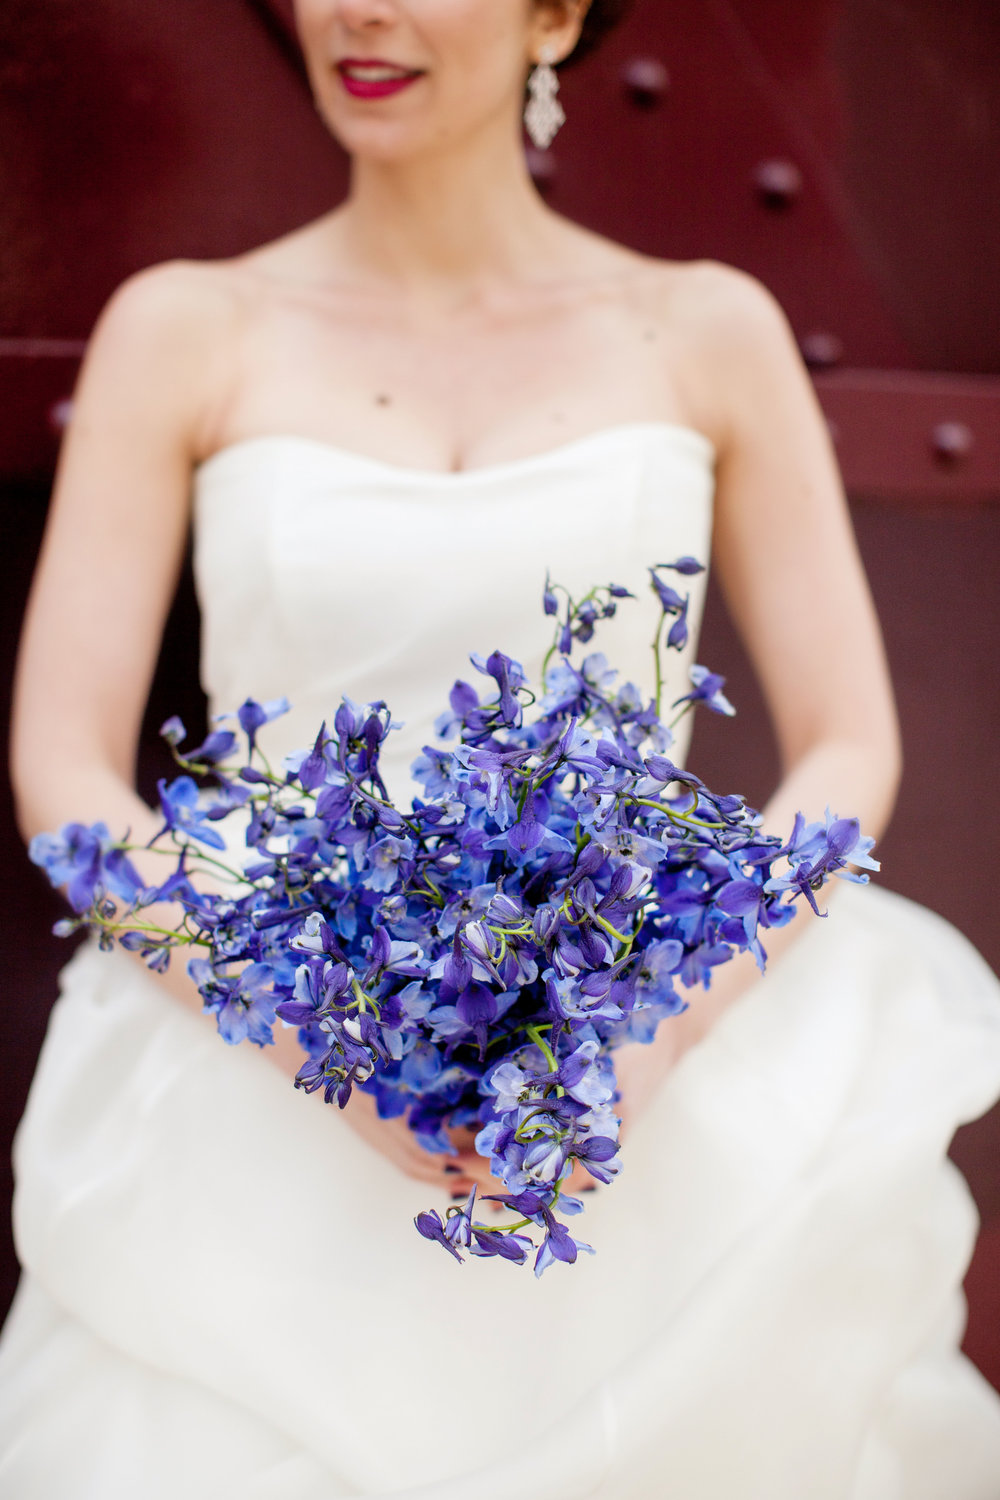 Flowers by Fleur, photo by Olivia Leigh Photographie & Associates